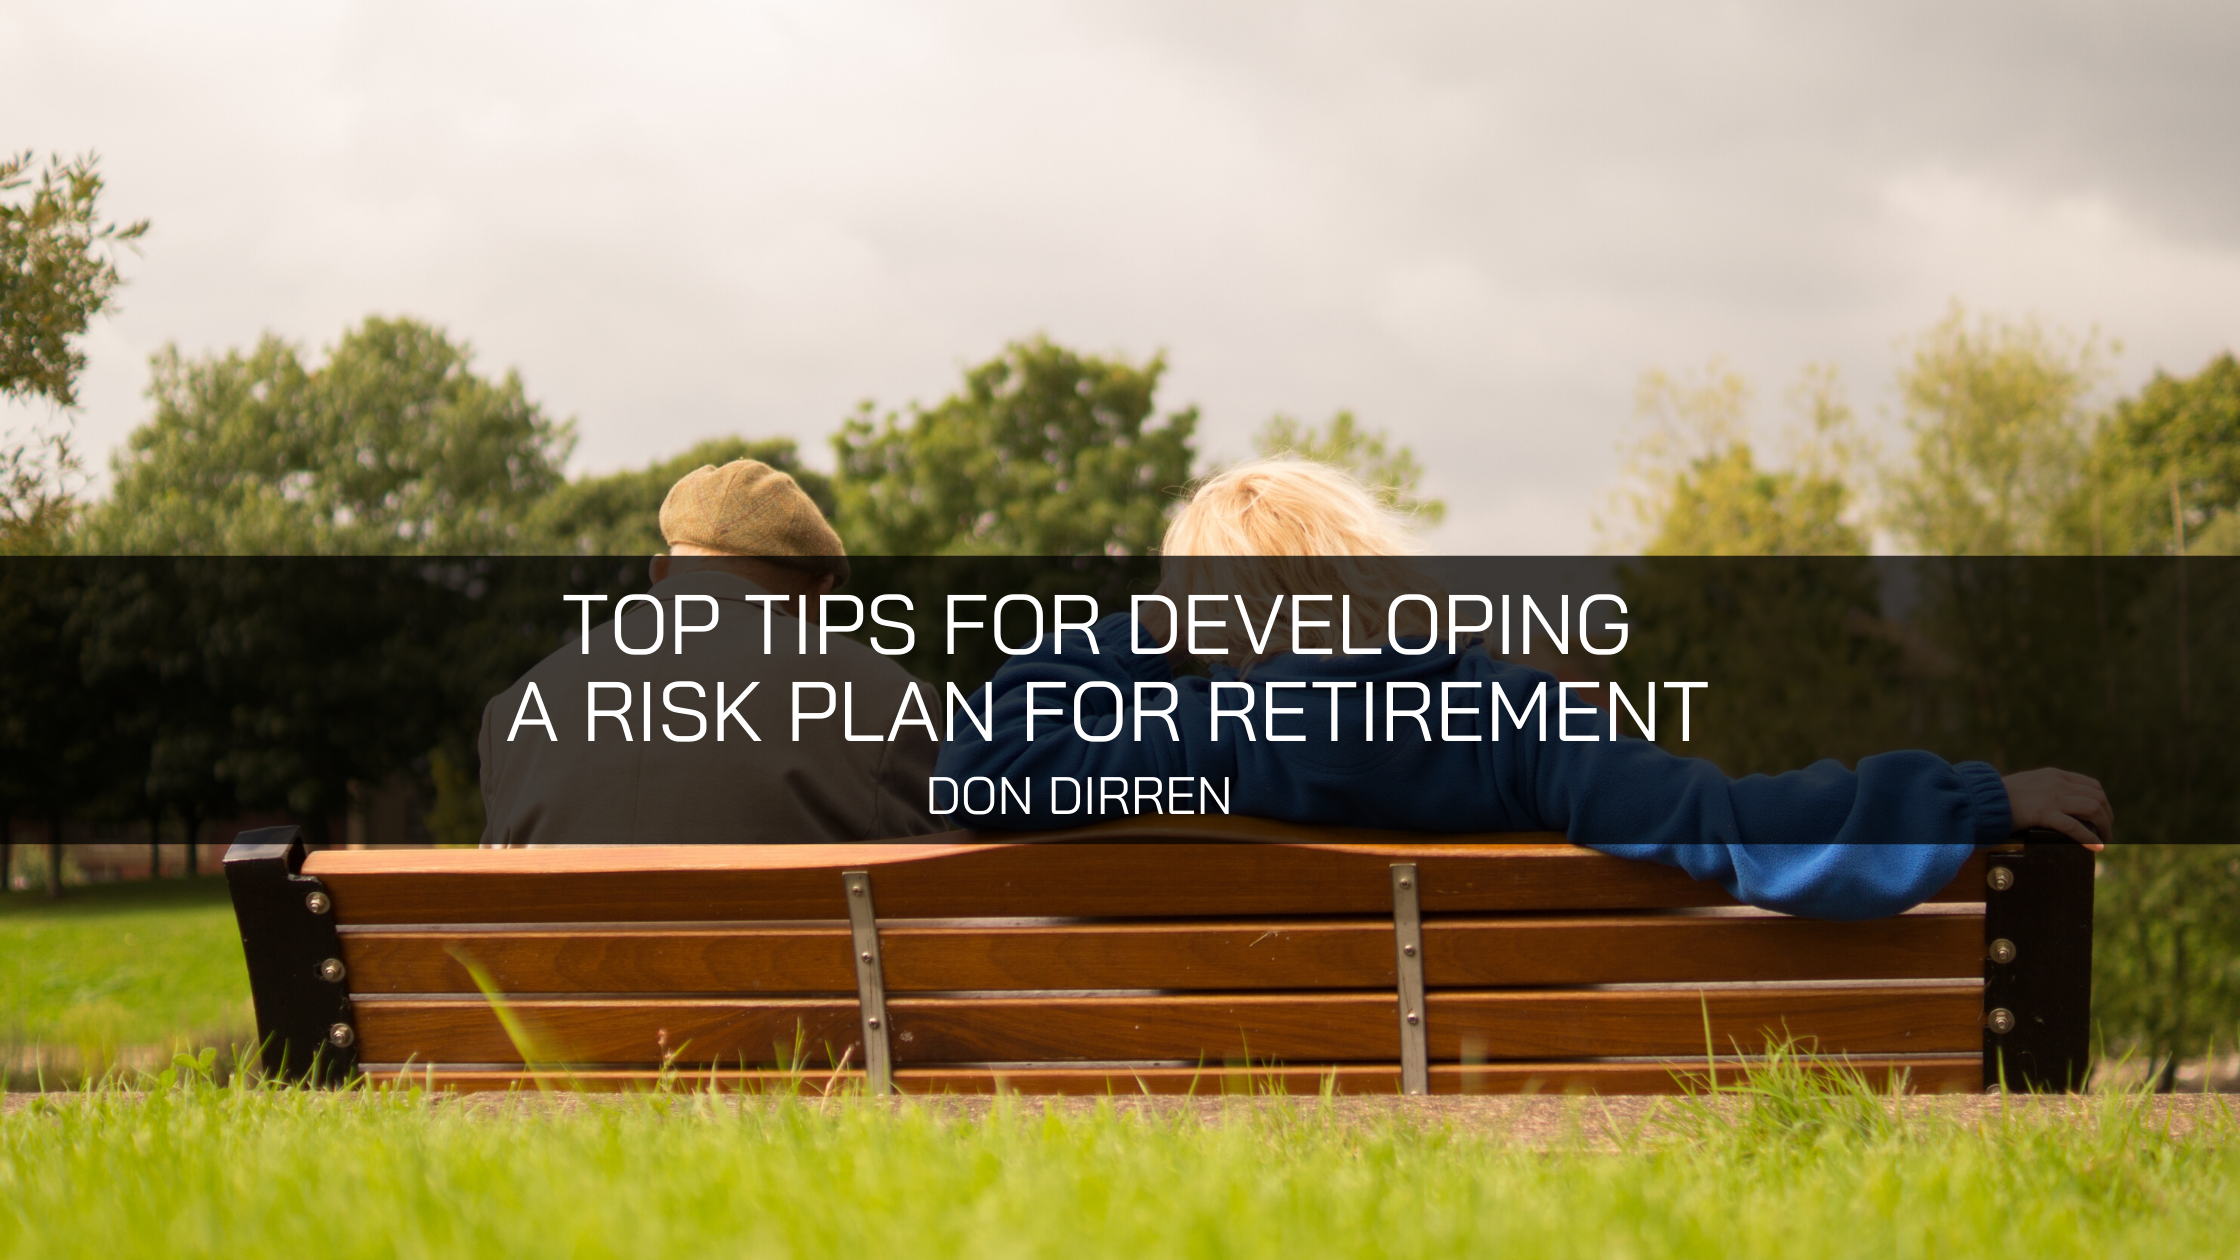 Financial Advisor Don Dirren Offers His Top Tips for Developing a Risk Plan for Retirement